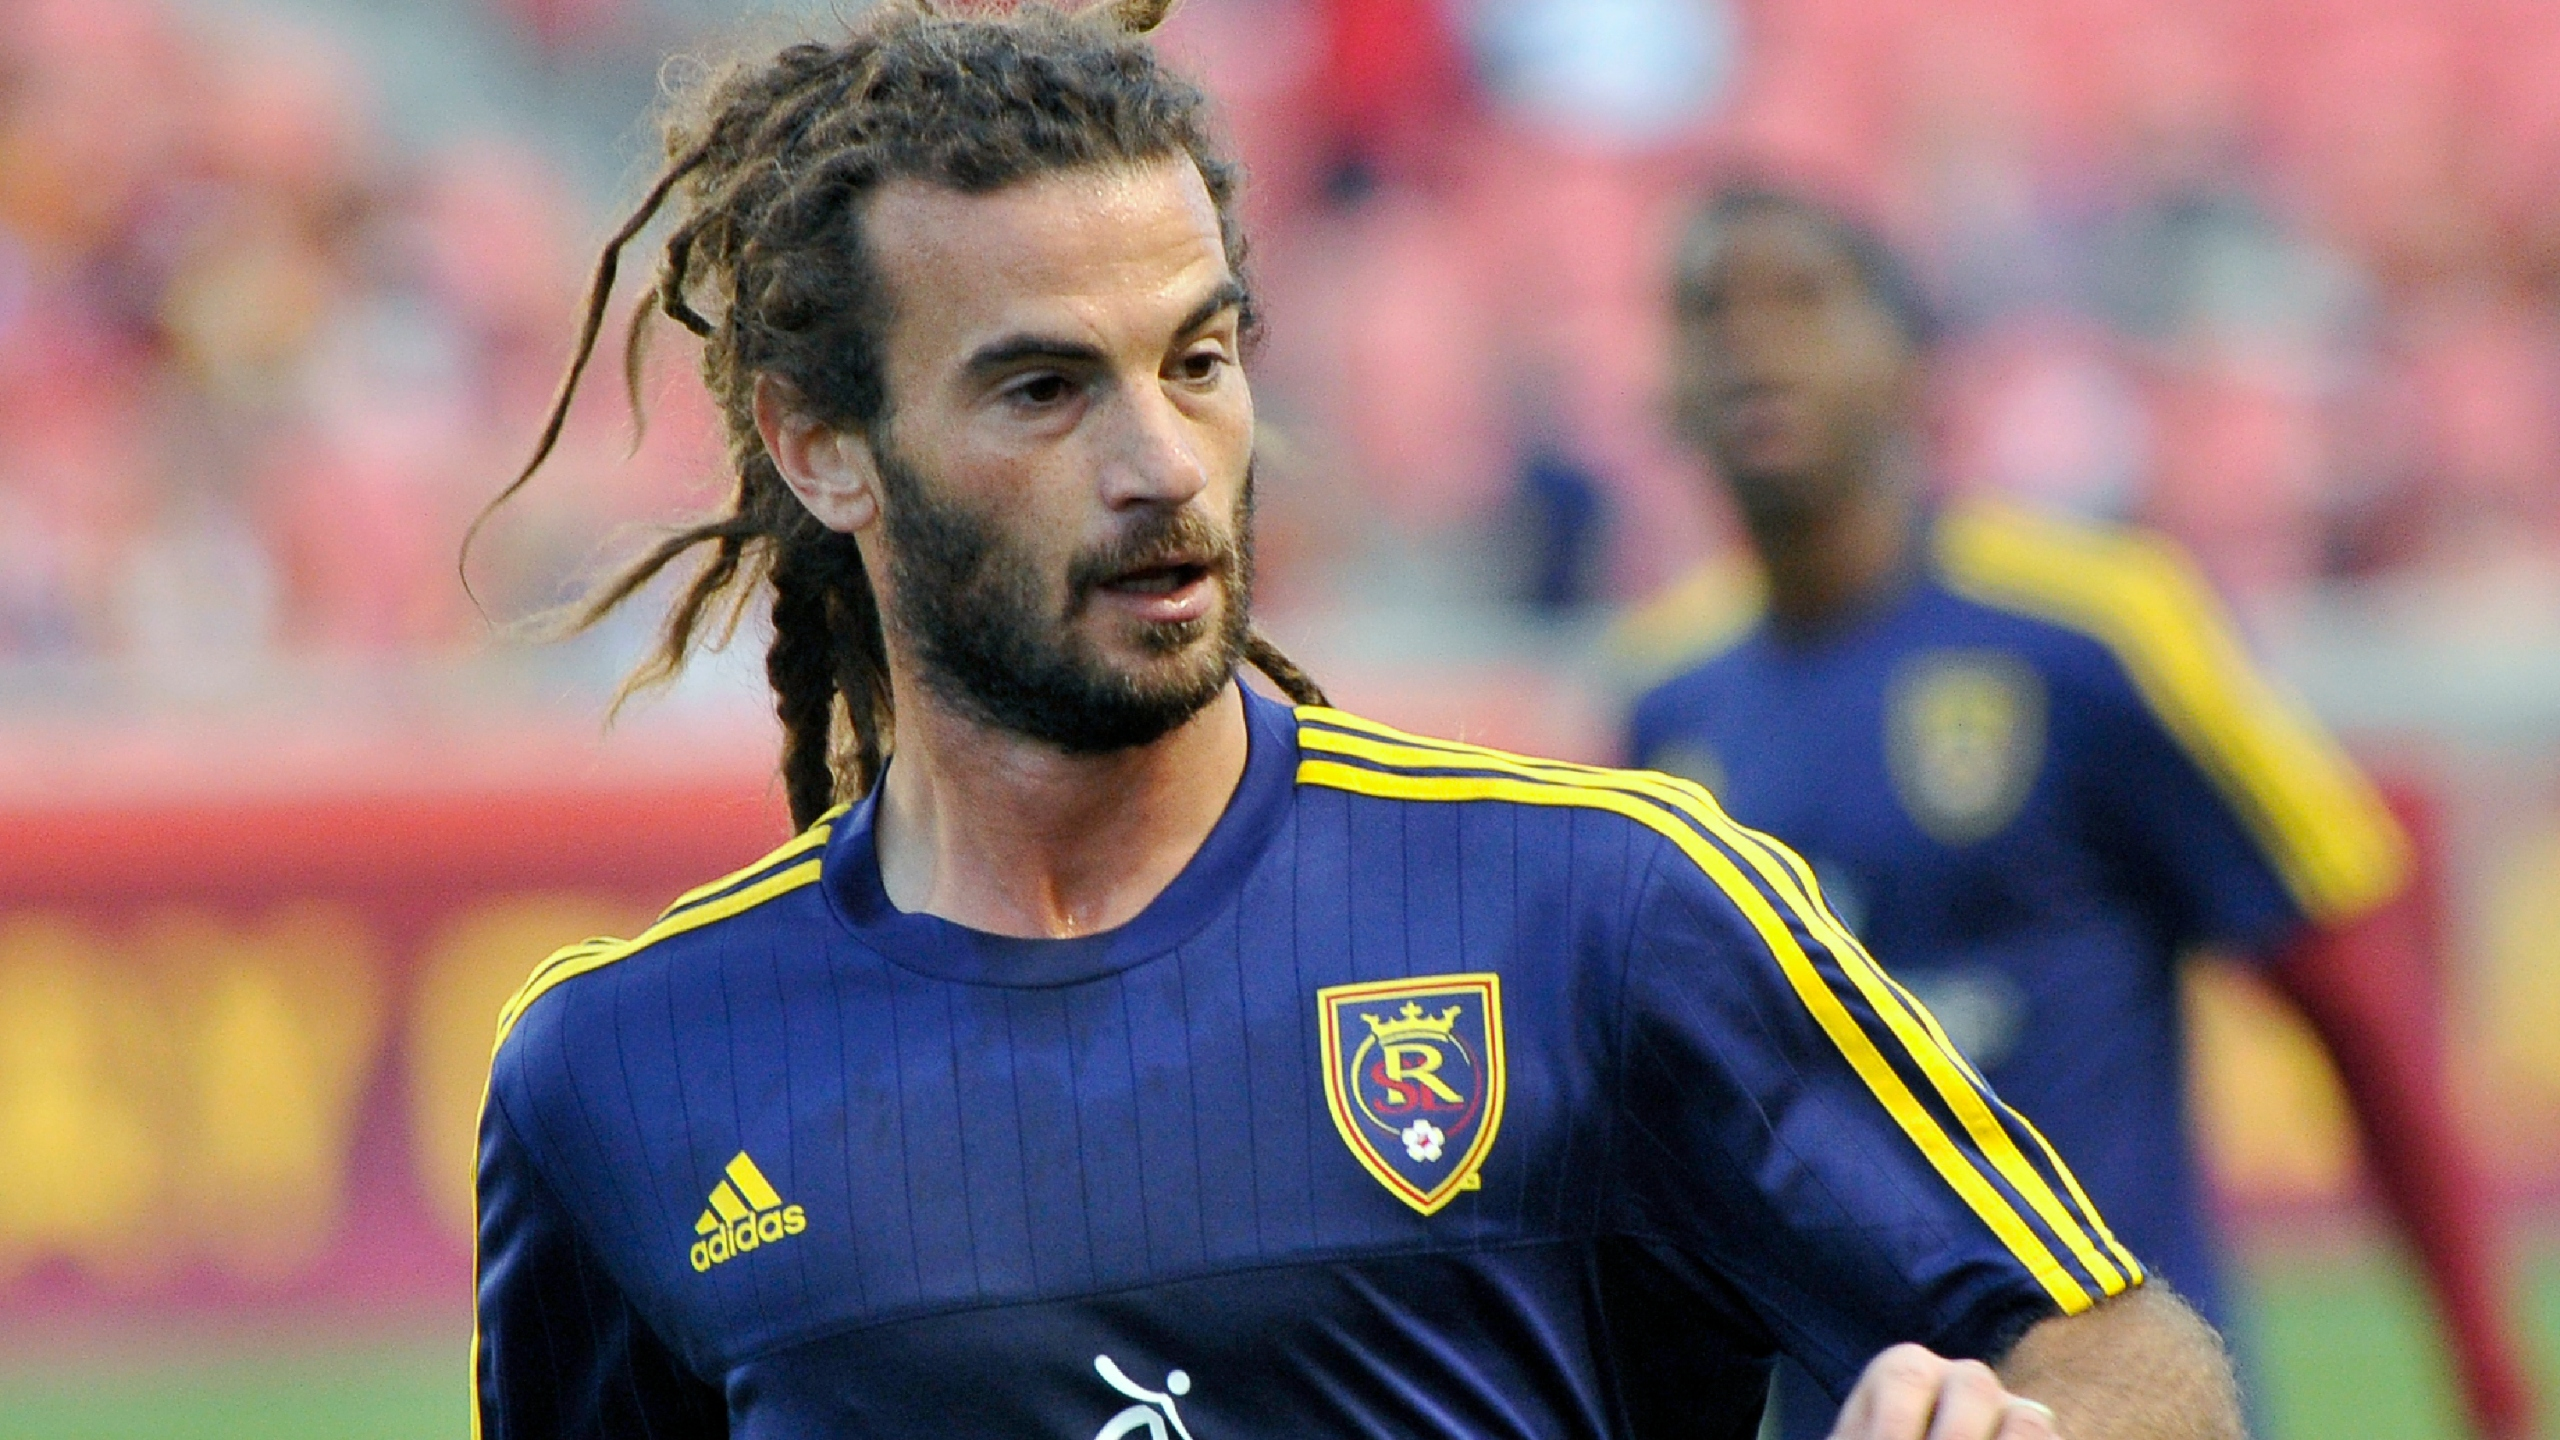 Kyle Beckerman UVU